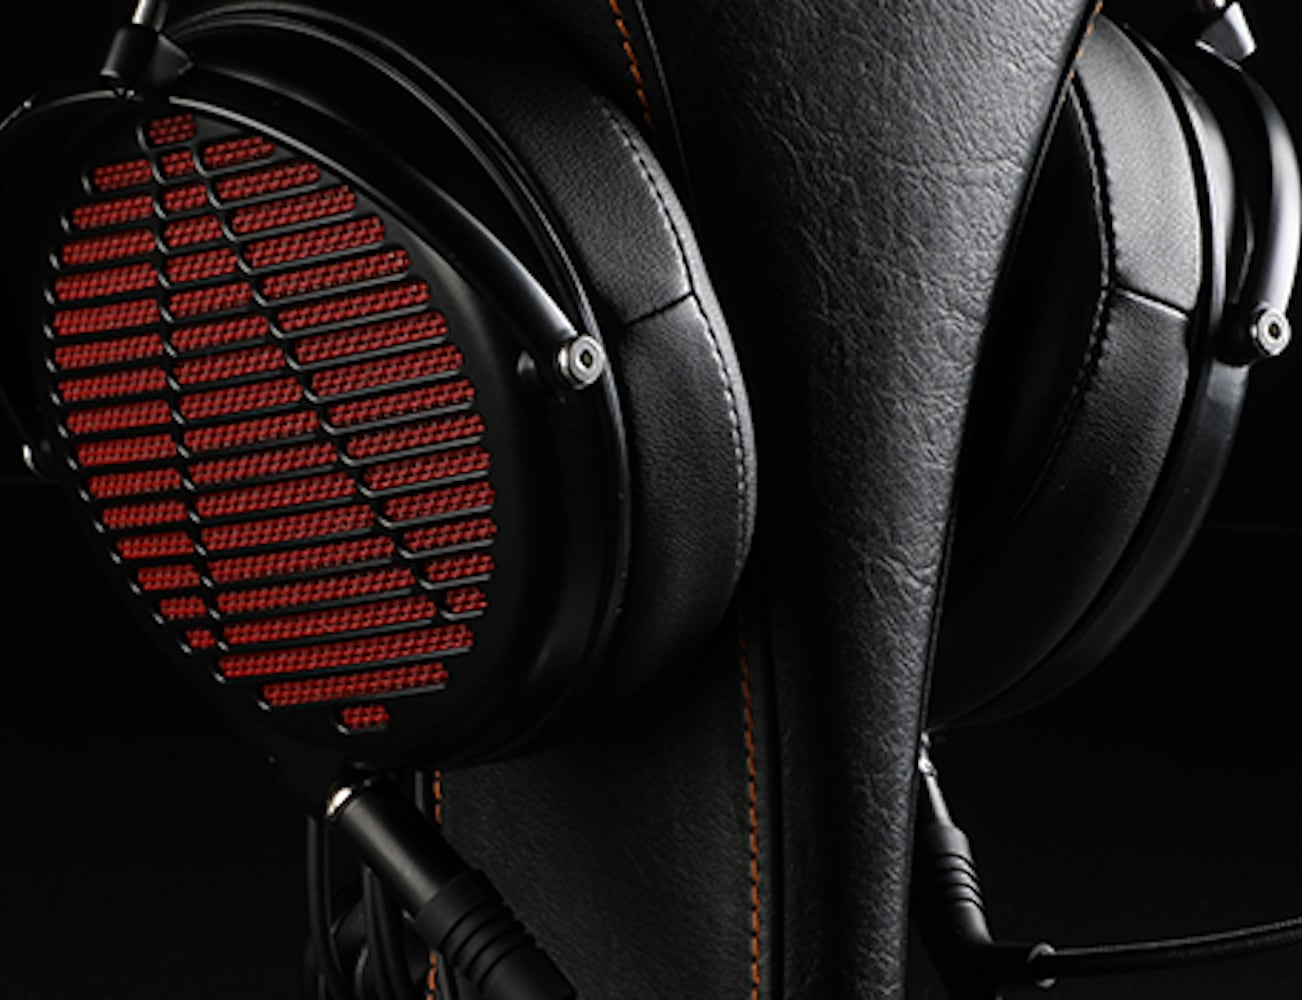 Audeze LCD-GX Audiophile Gaming Headphones provide crisp sound effects